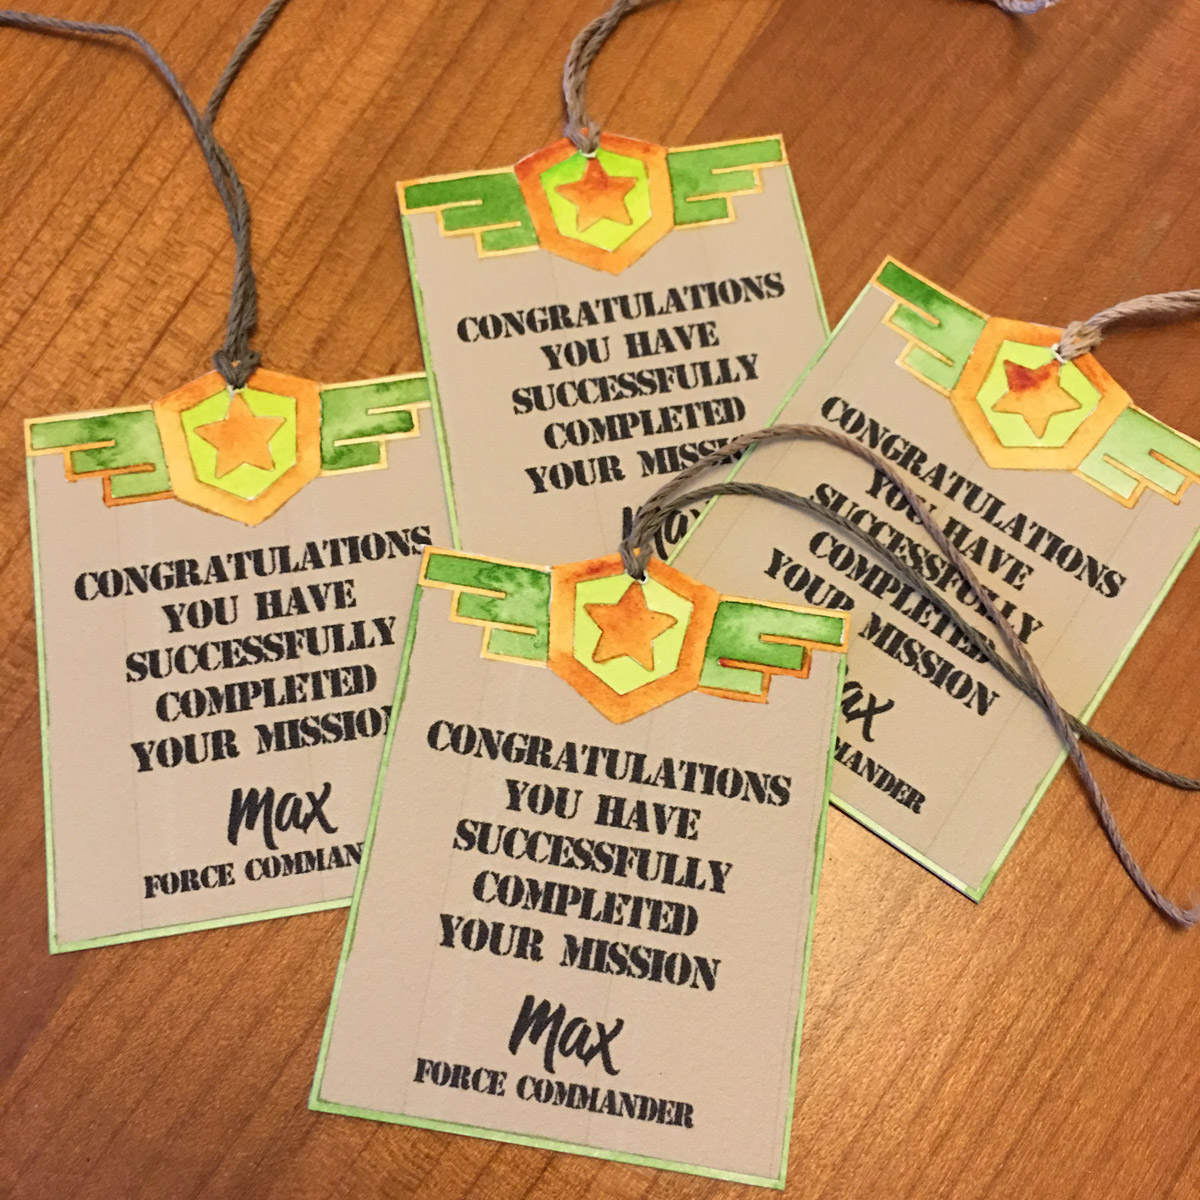 Bag tags were also created to add the finishing touch to the thank you bags for guests to take home at the end of the event.